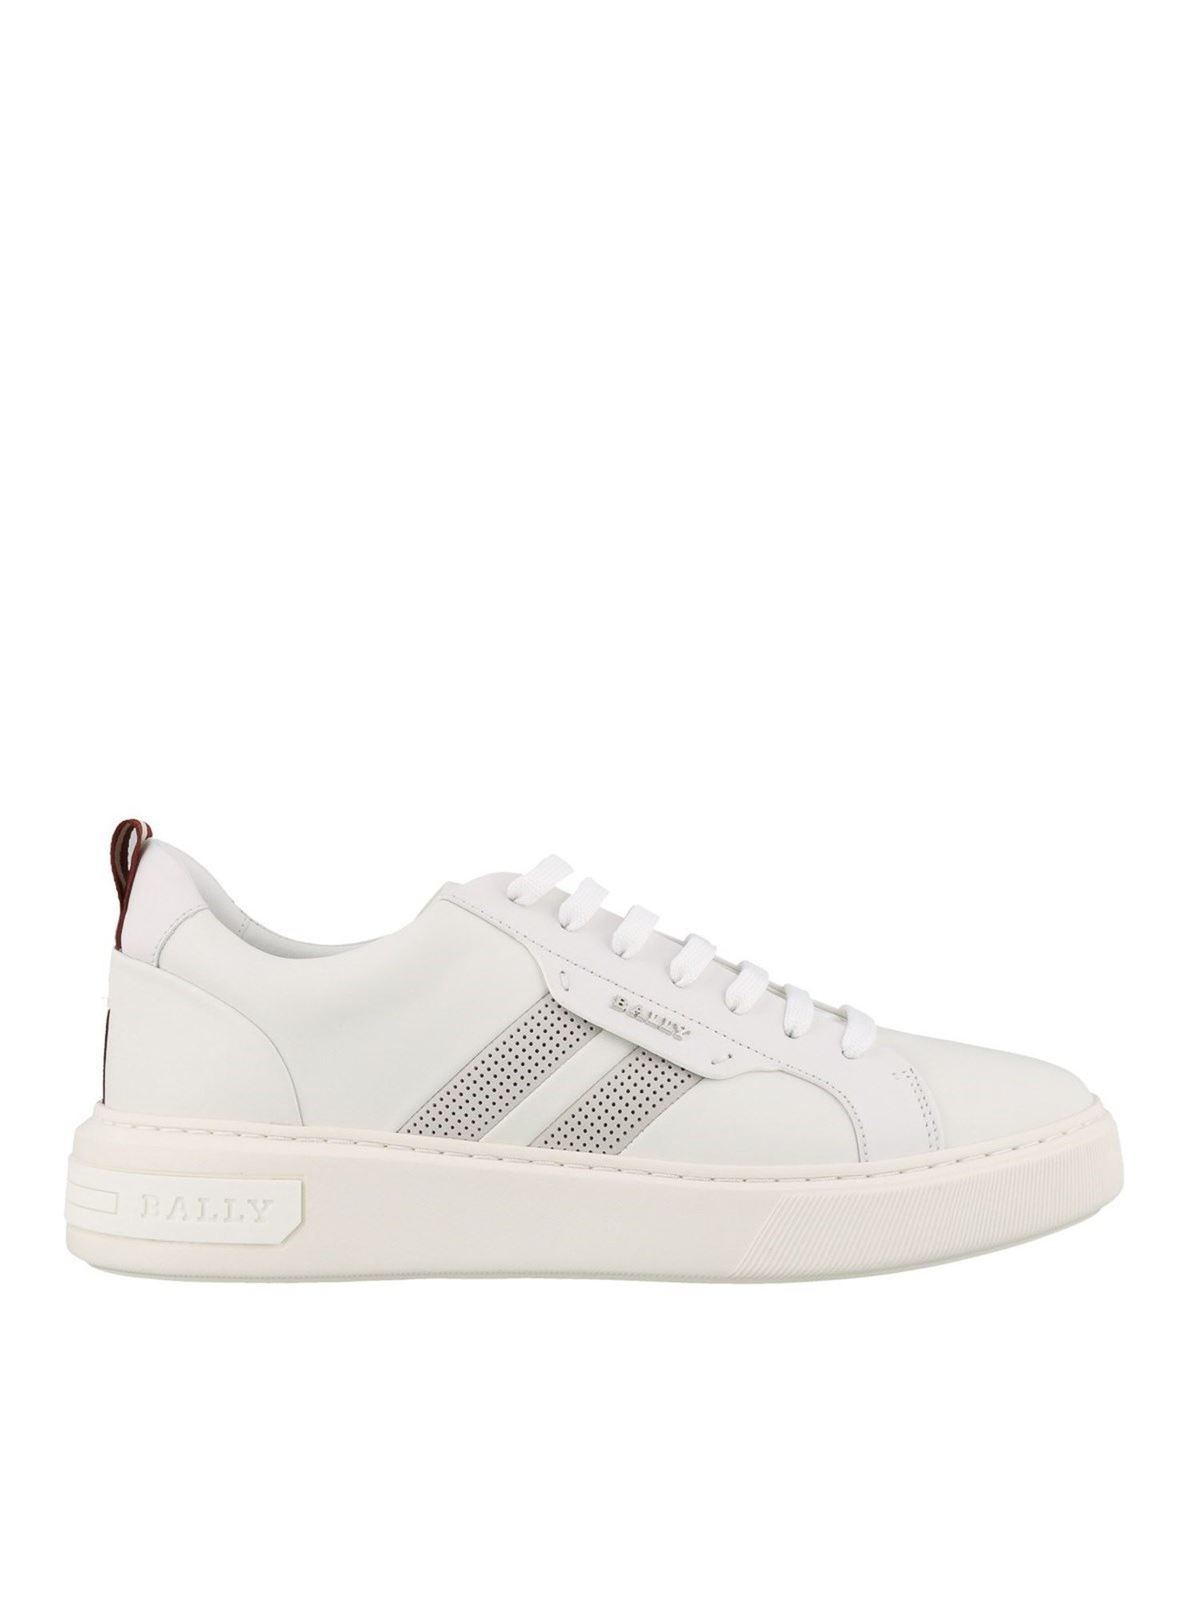 Bally Leathers MAXIM SNEAKERS IN WHITE